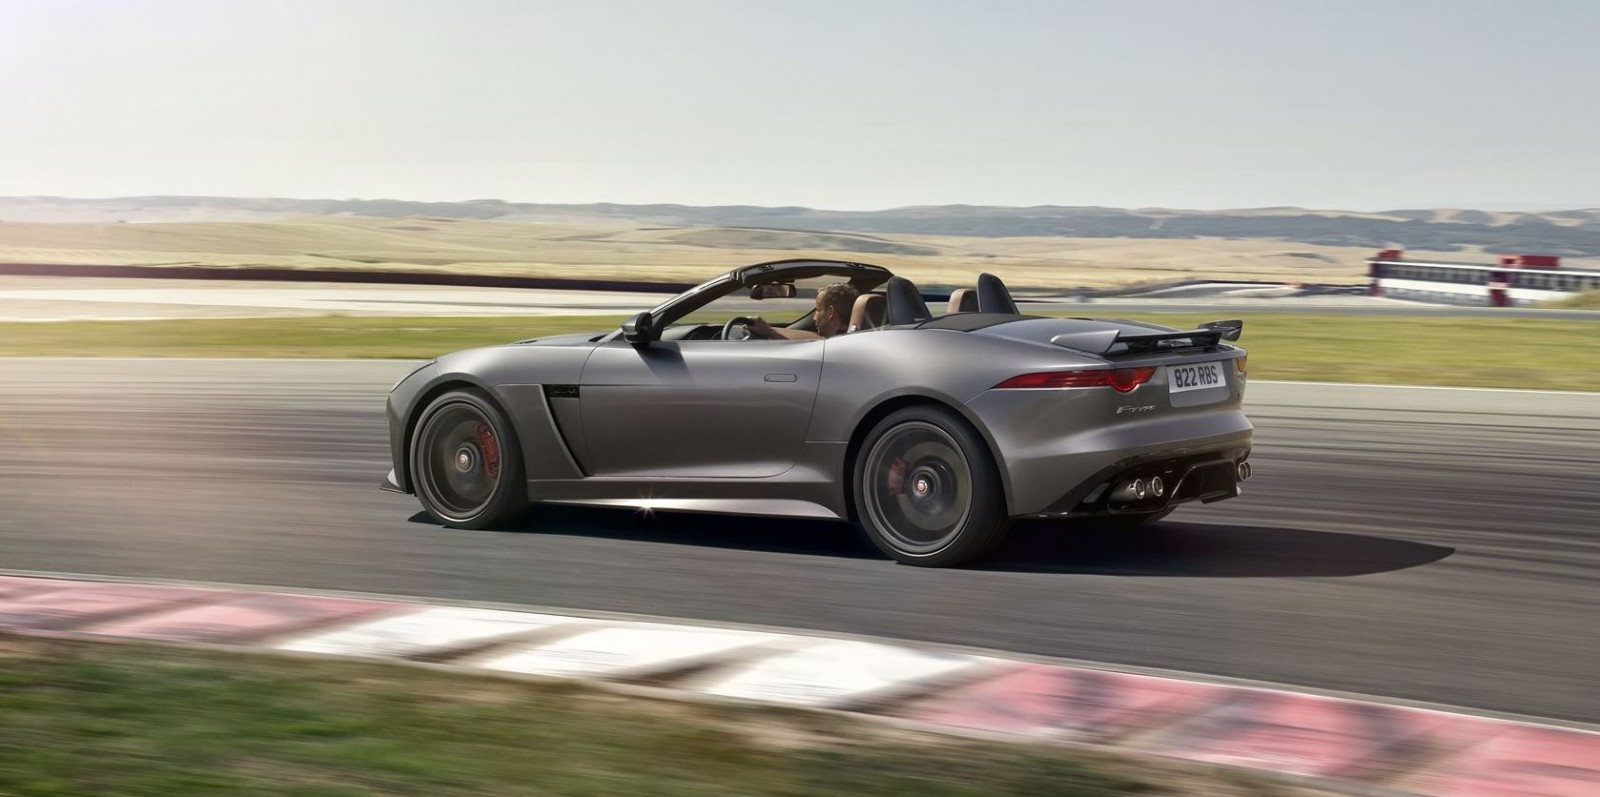 off the chain 200mph 2017 jaguar f type svr 60 new images tech specs and pricing revealed. Black Bedroom Furniture Sets. Home Design Ideas